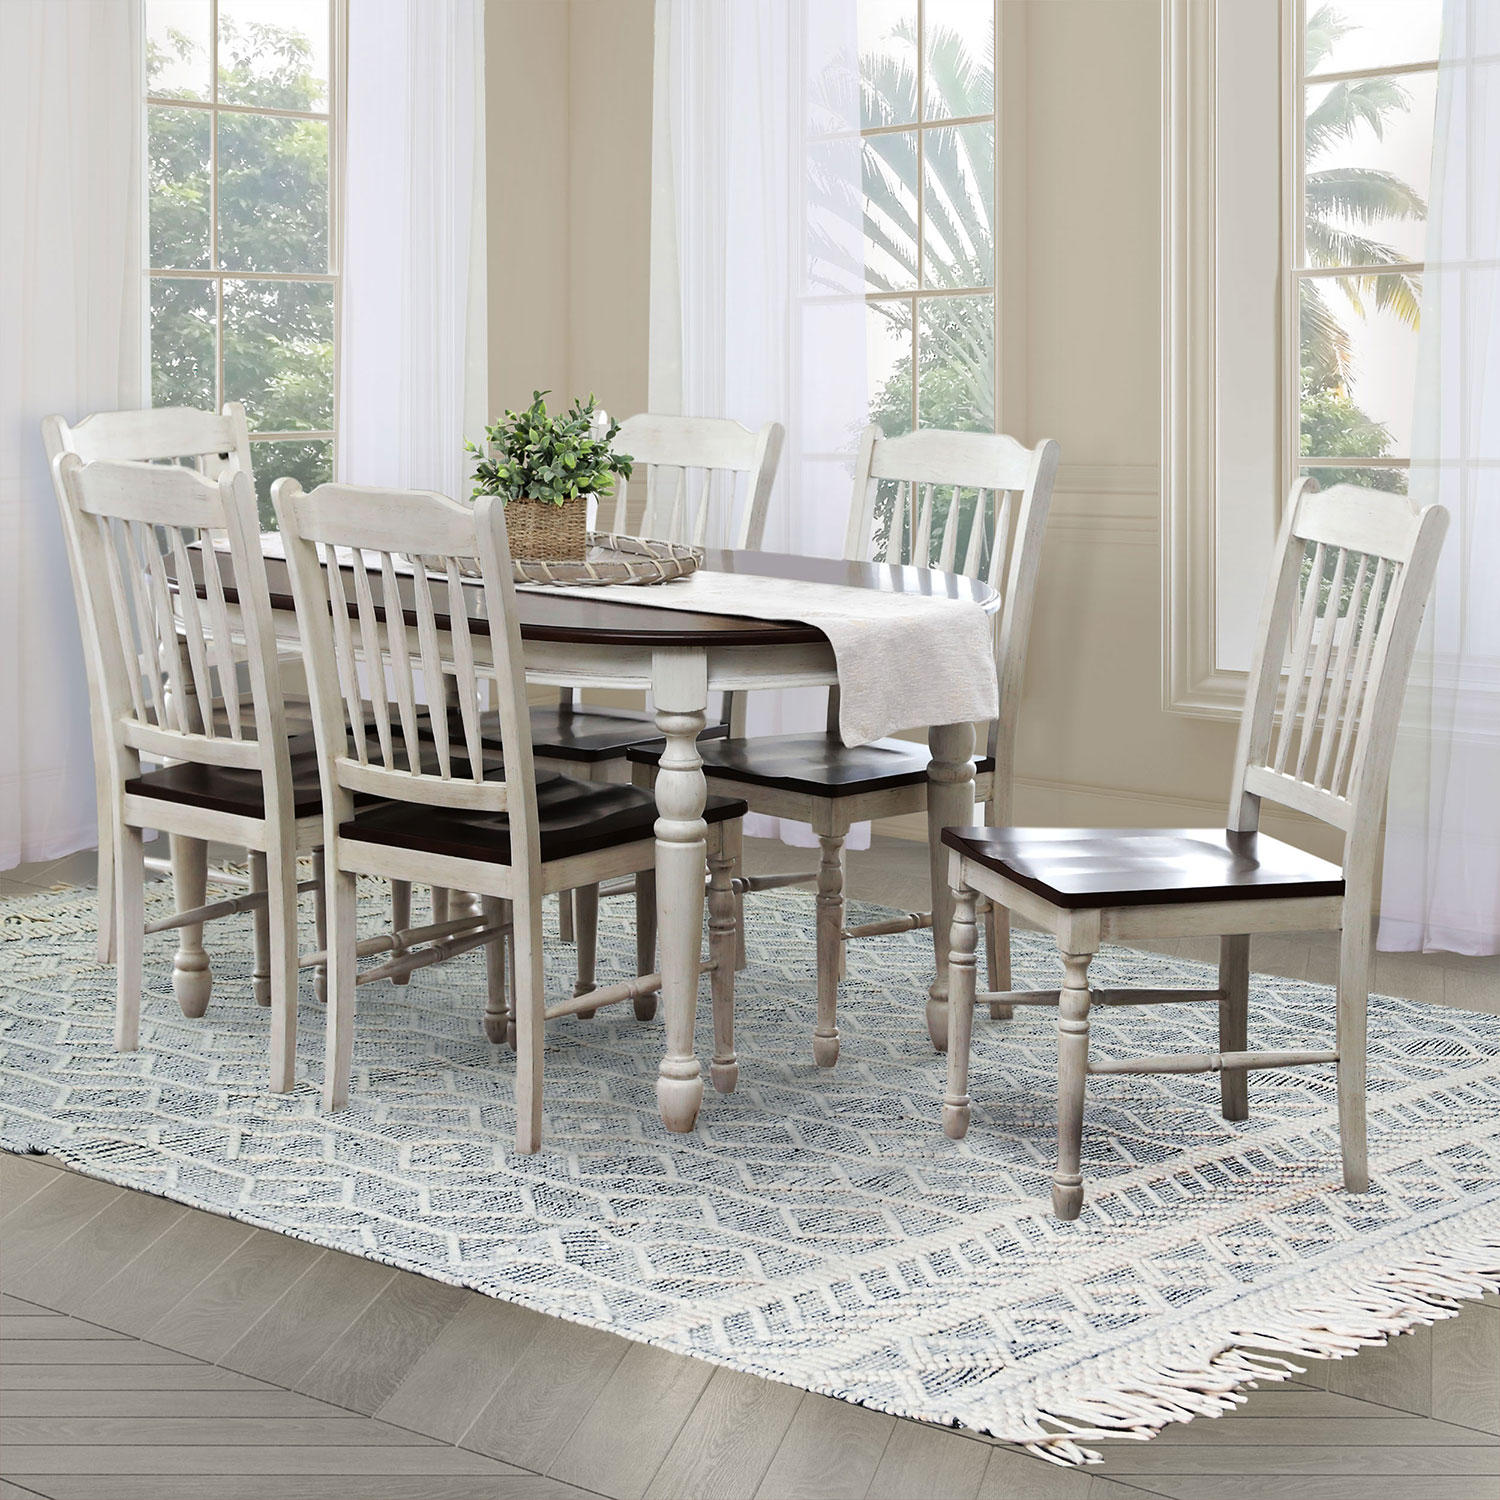 Abbyson Living 7-Pieces Mila Dining Set